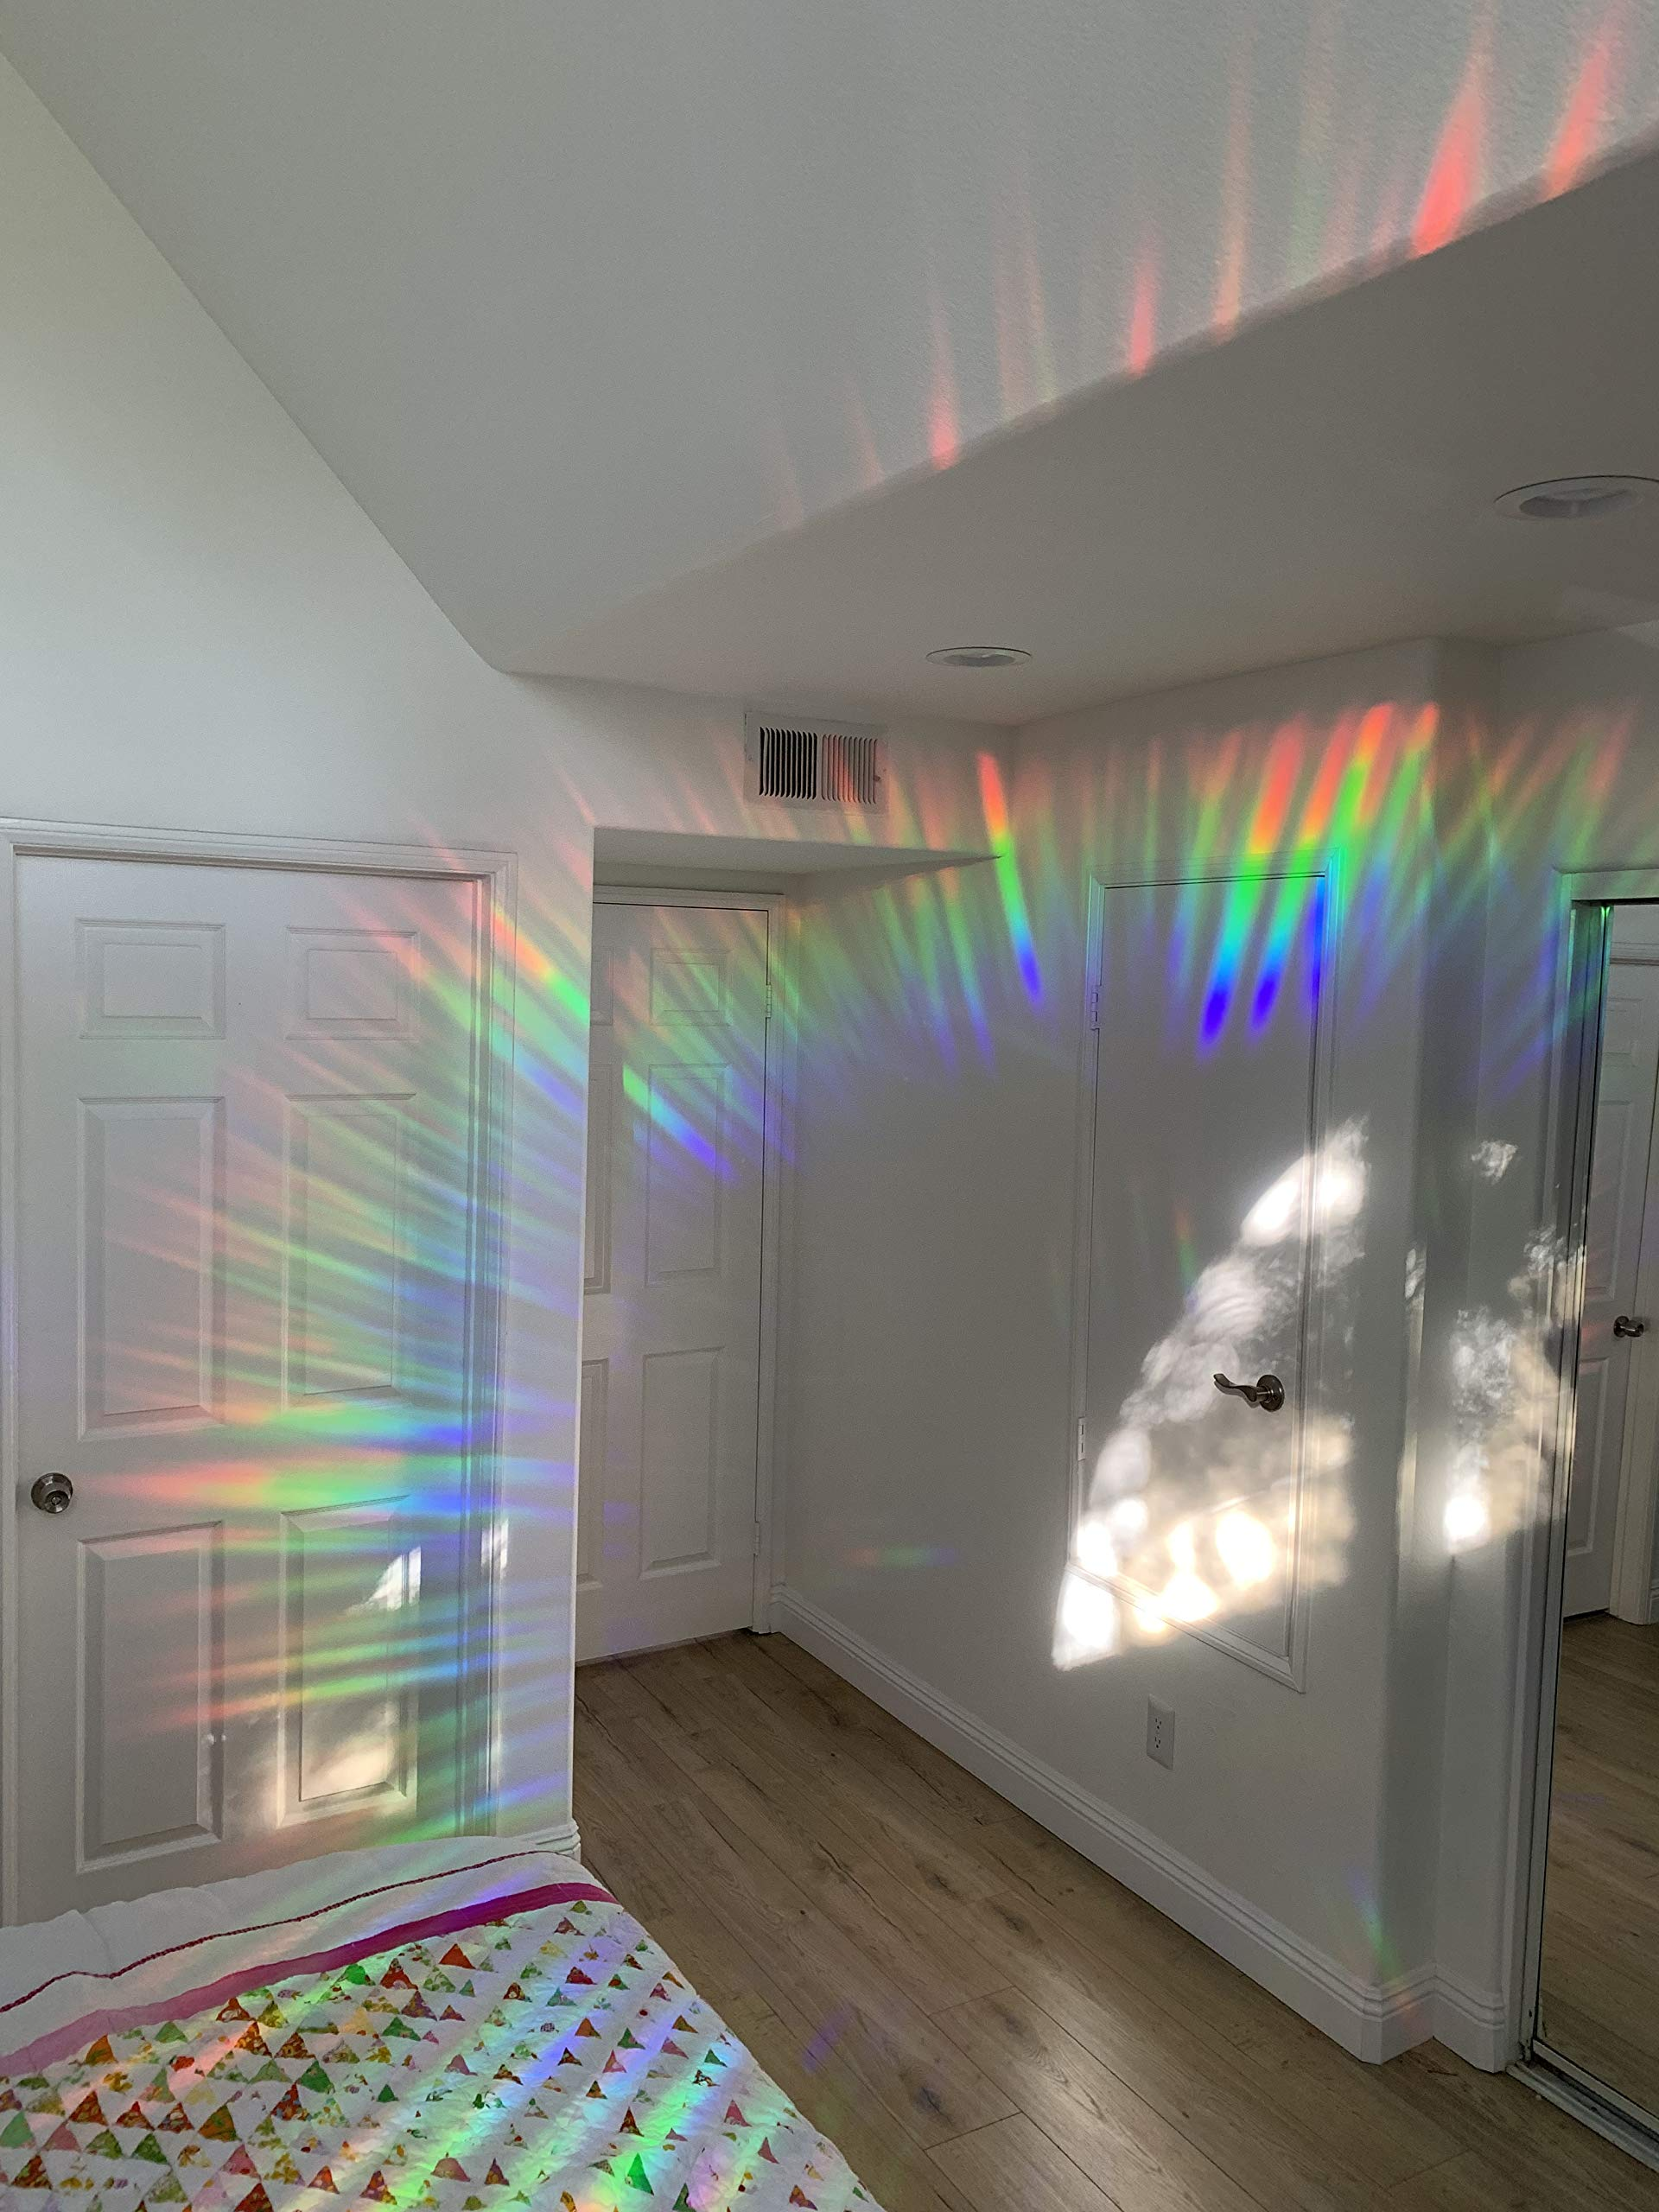 Decorative Window Film Holographic Prismatic Etched Glass Effect - Fill Your House with Rainbow Light 24'' X 36'' Panels - Ambrosia Pattern